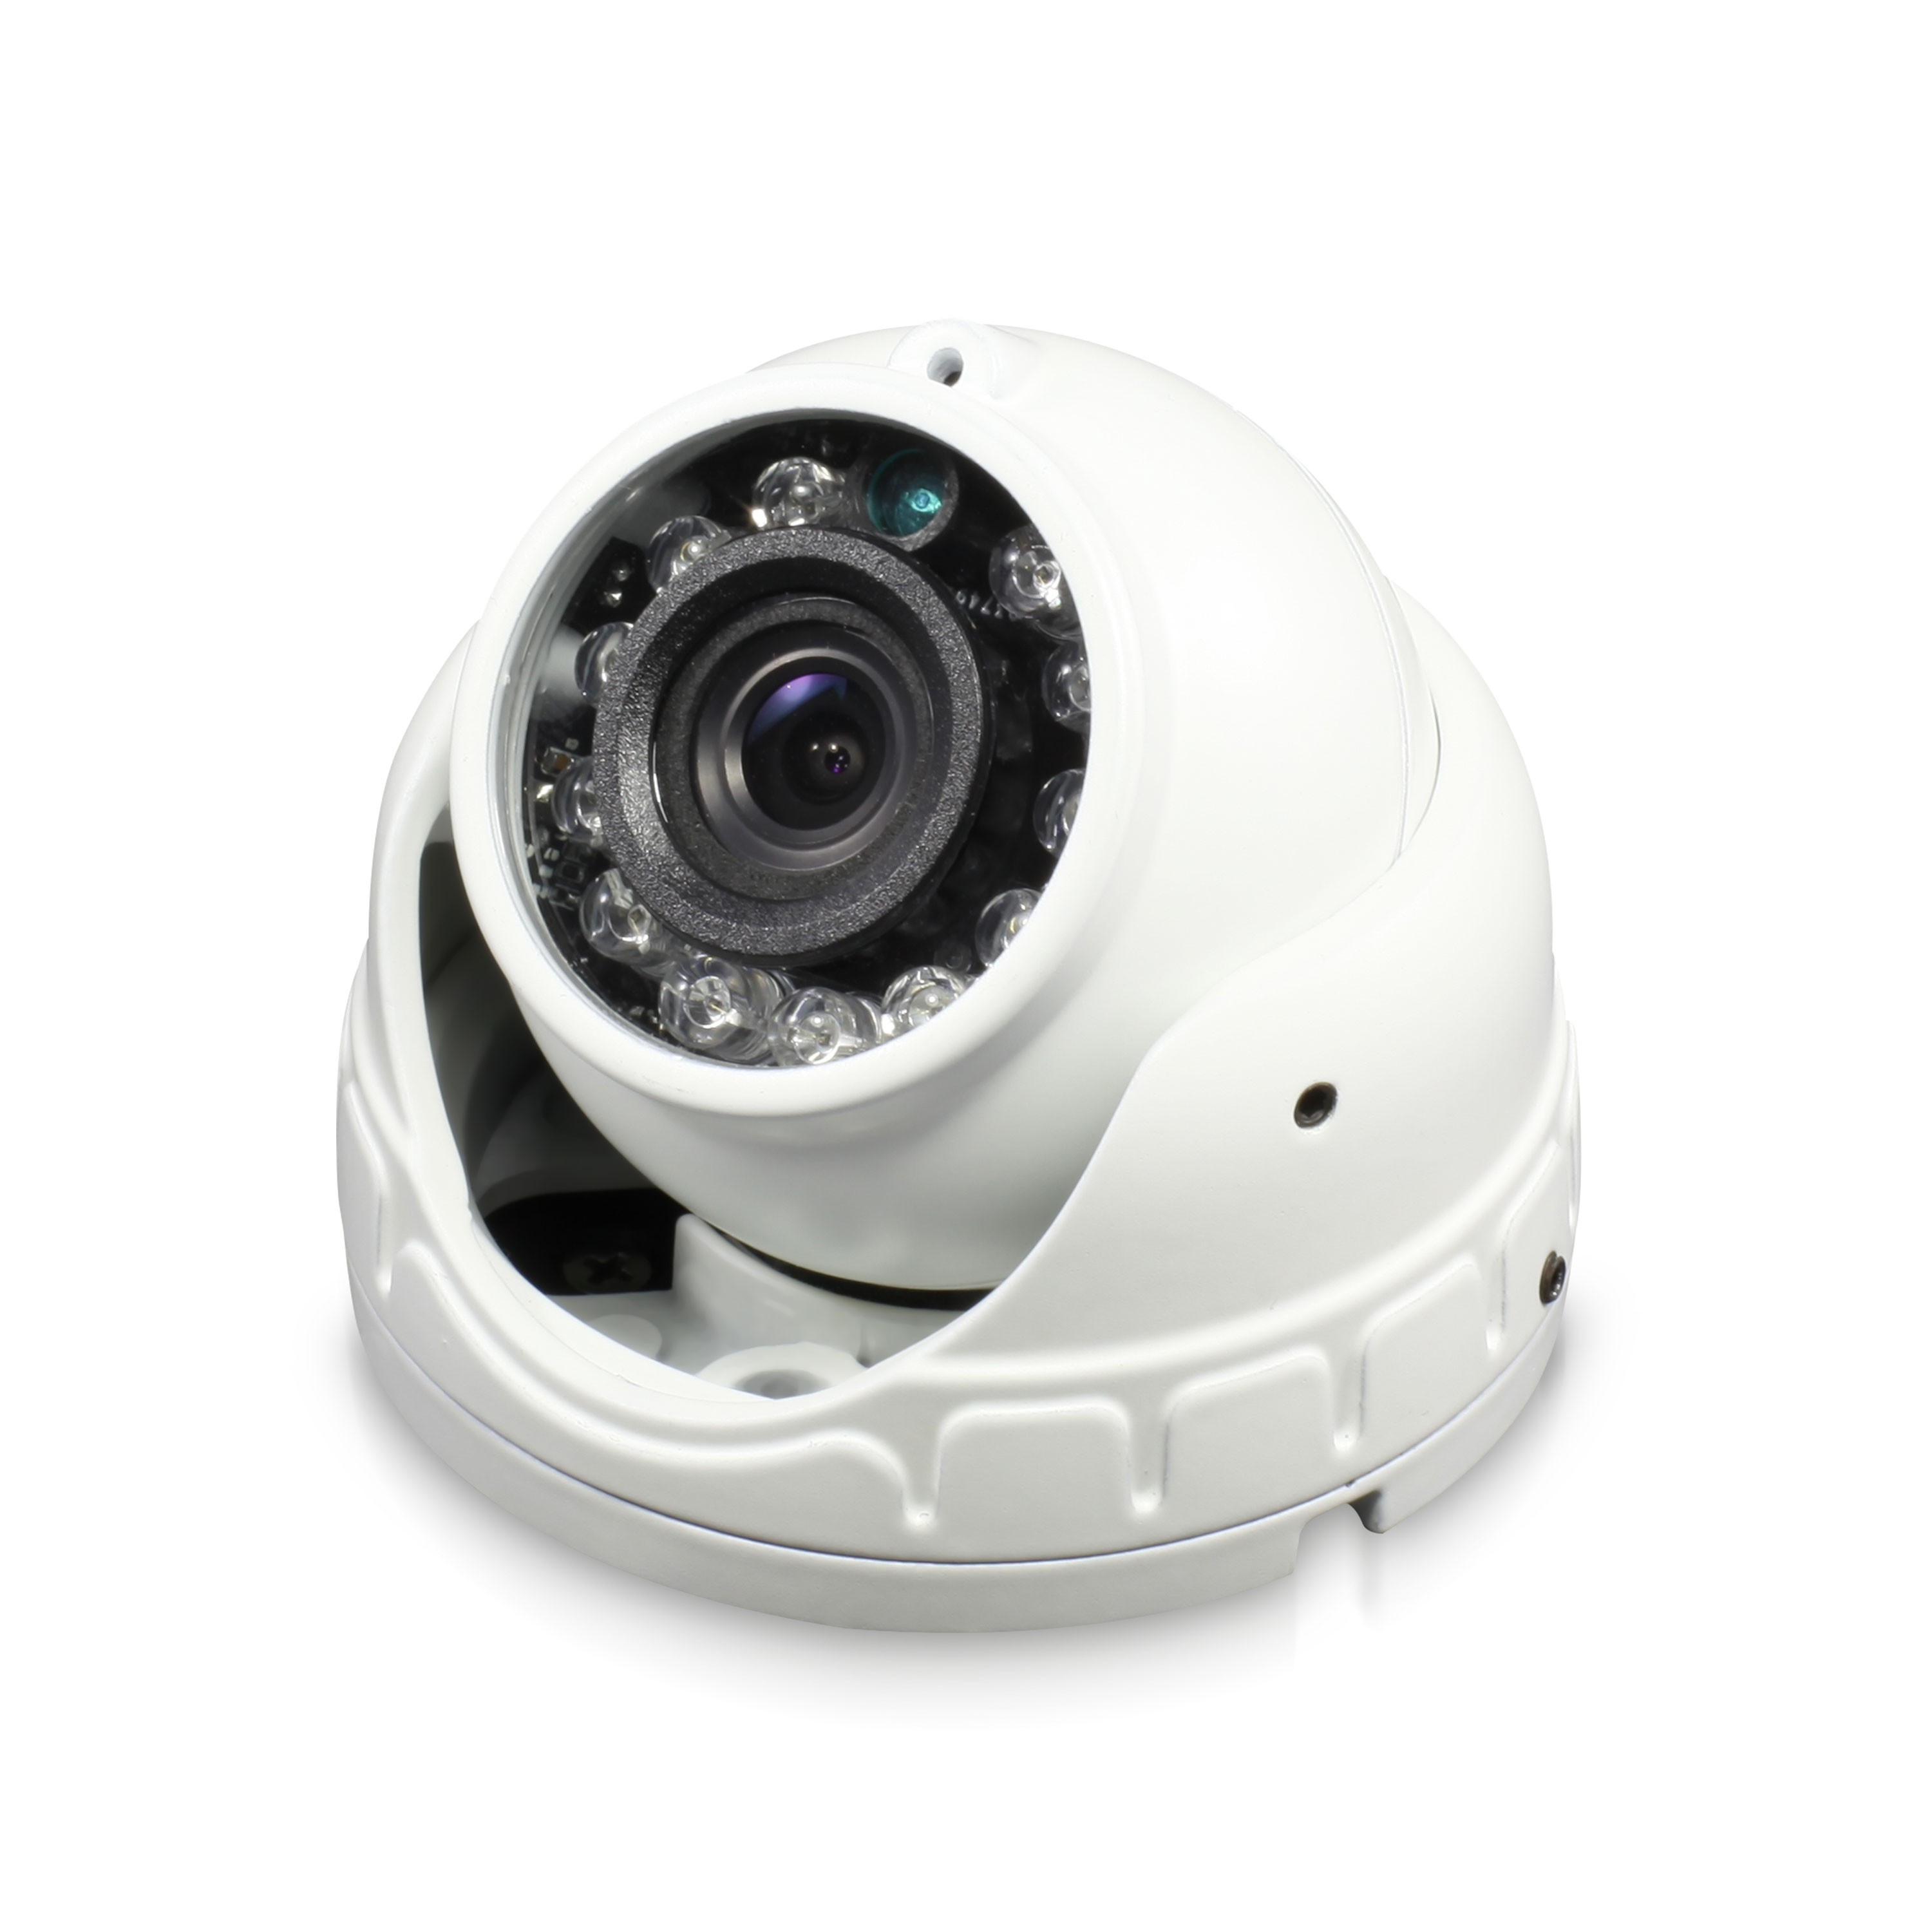 57d5fa62719 SWPRO-1080FLD Swann Outdoor Security Camera  1080p Full HD Mini Dome with  Audio